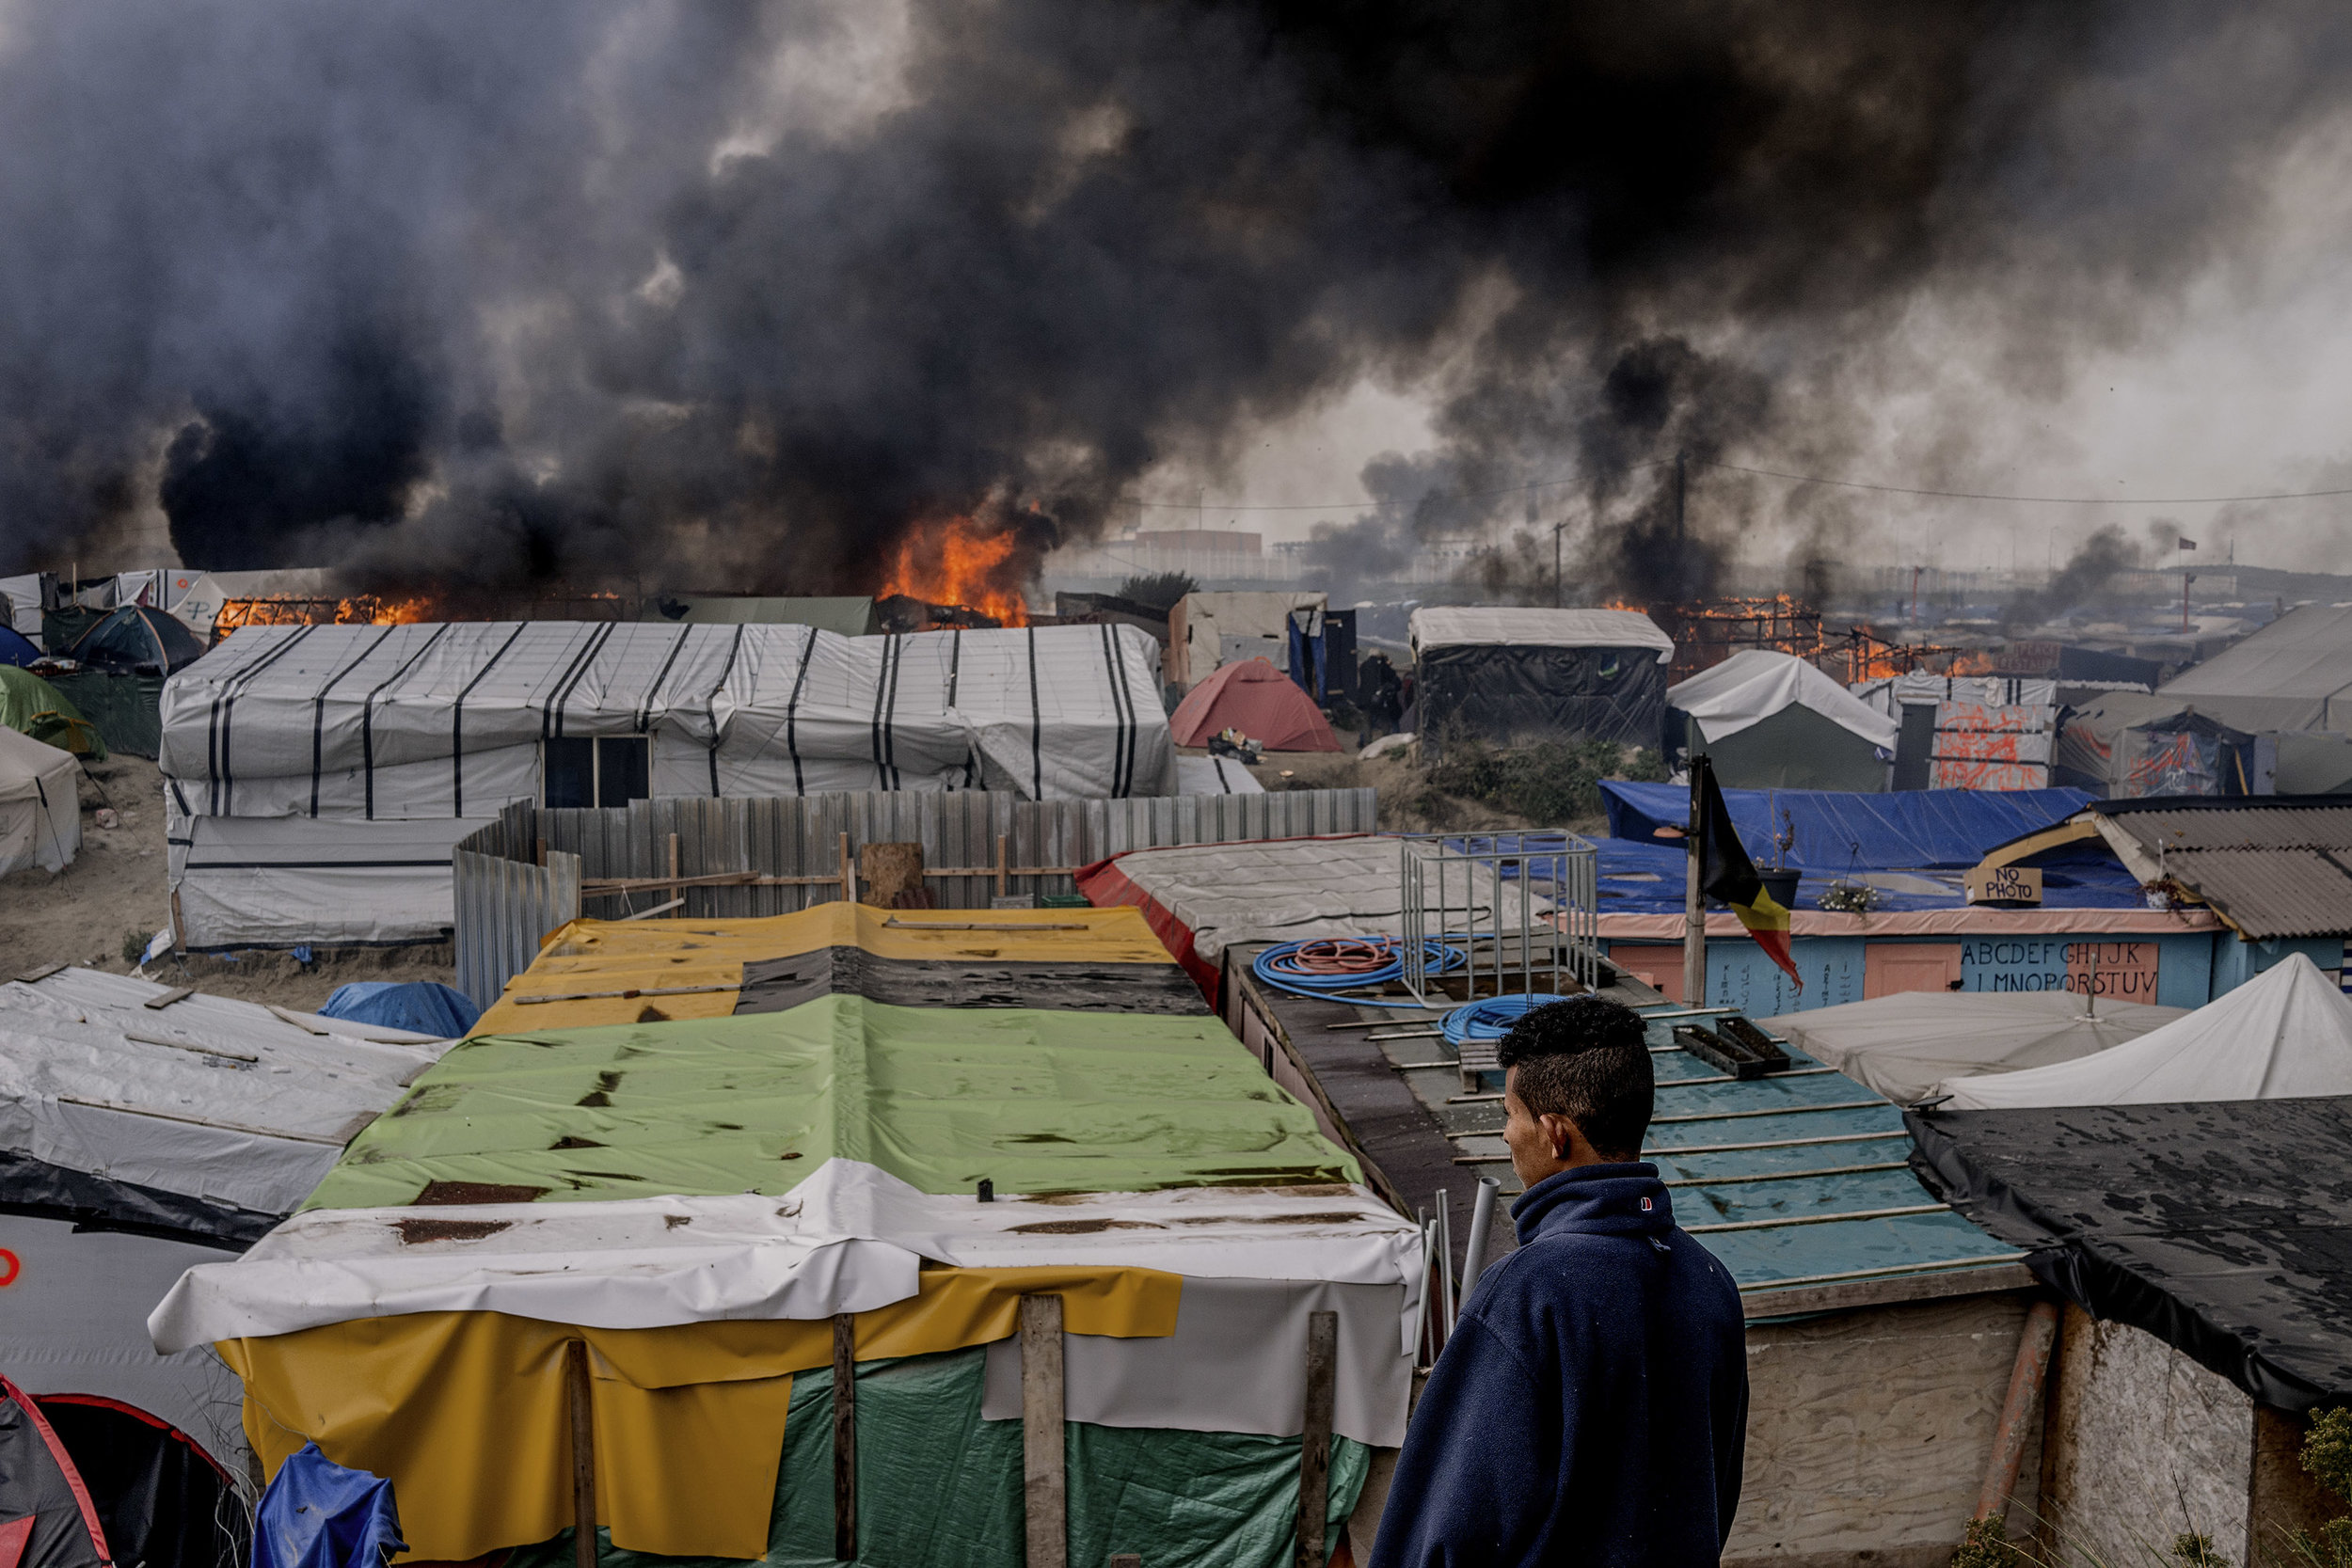 26th October 2016, The Jungle of Calais in France is in huge fire. A young migrant from Sudan watches from the hill.